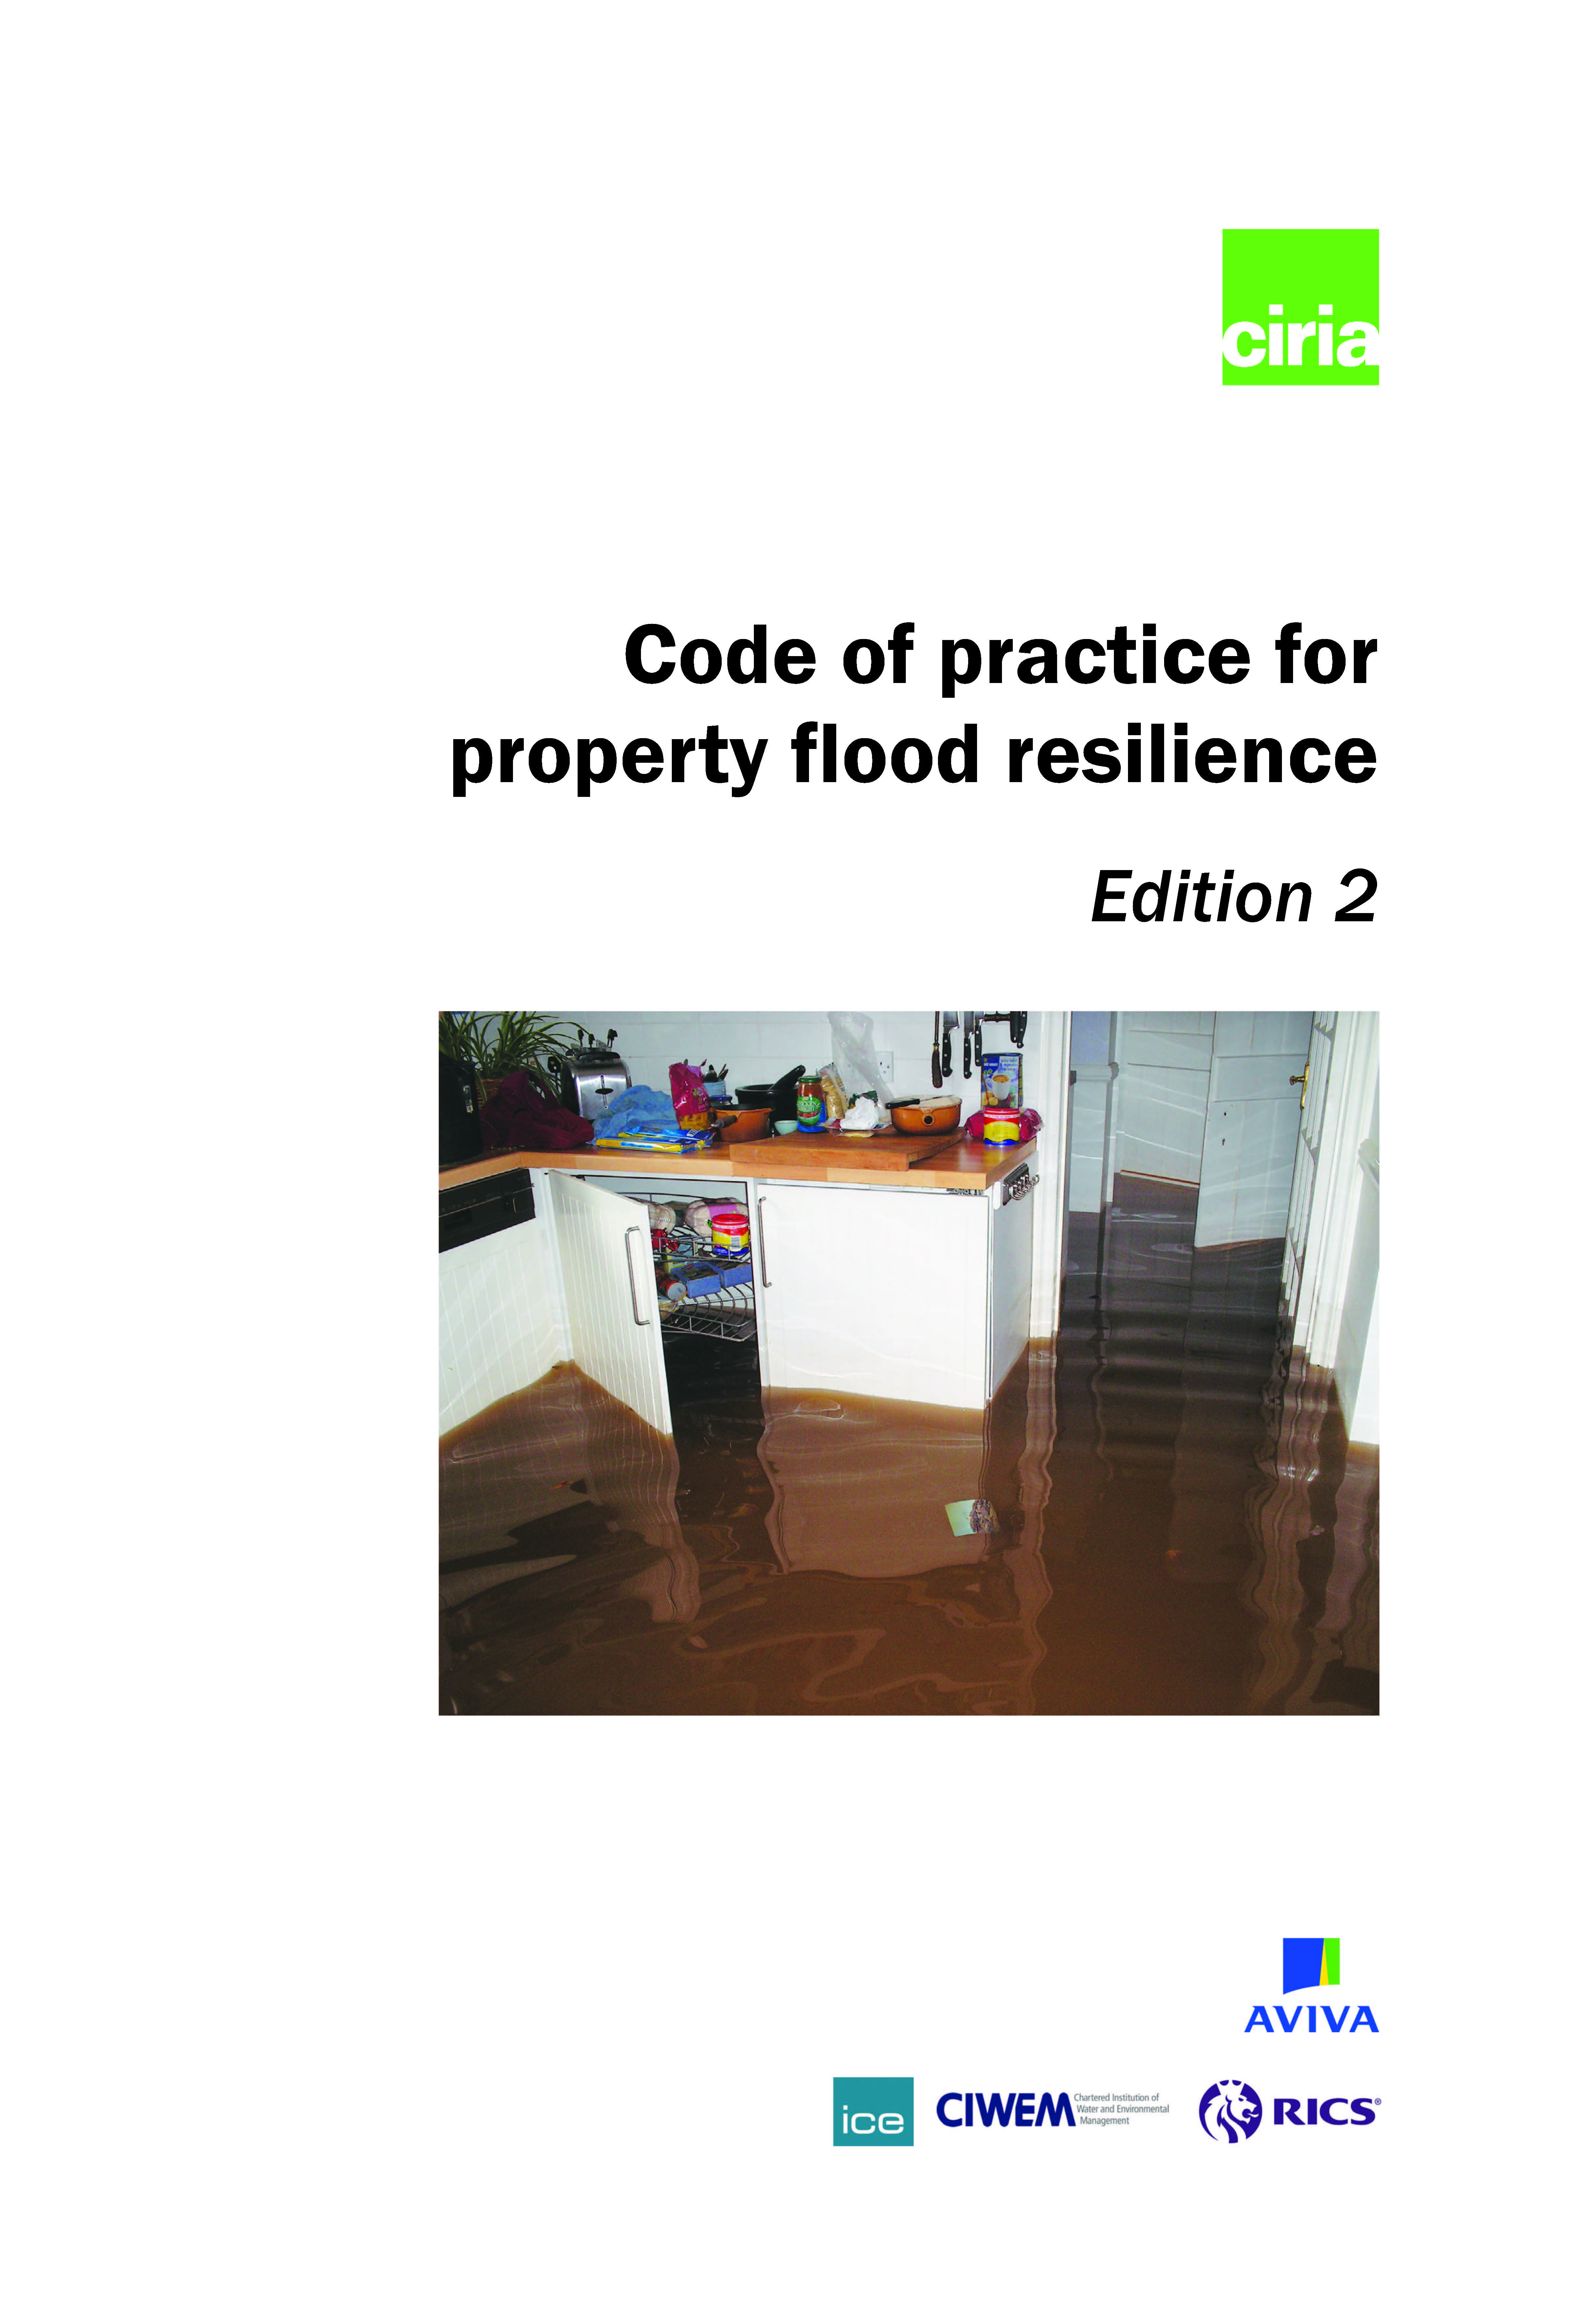 Code of practice for property flood resilience (C790F)